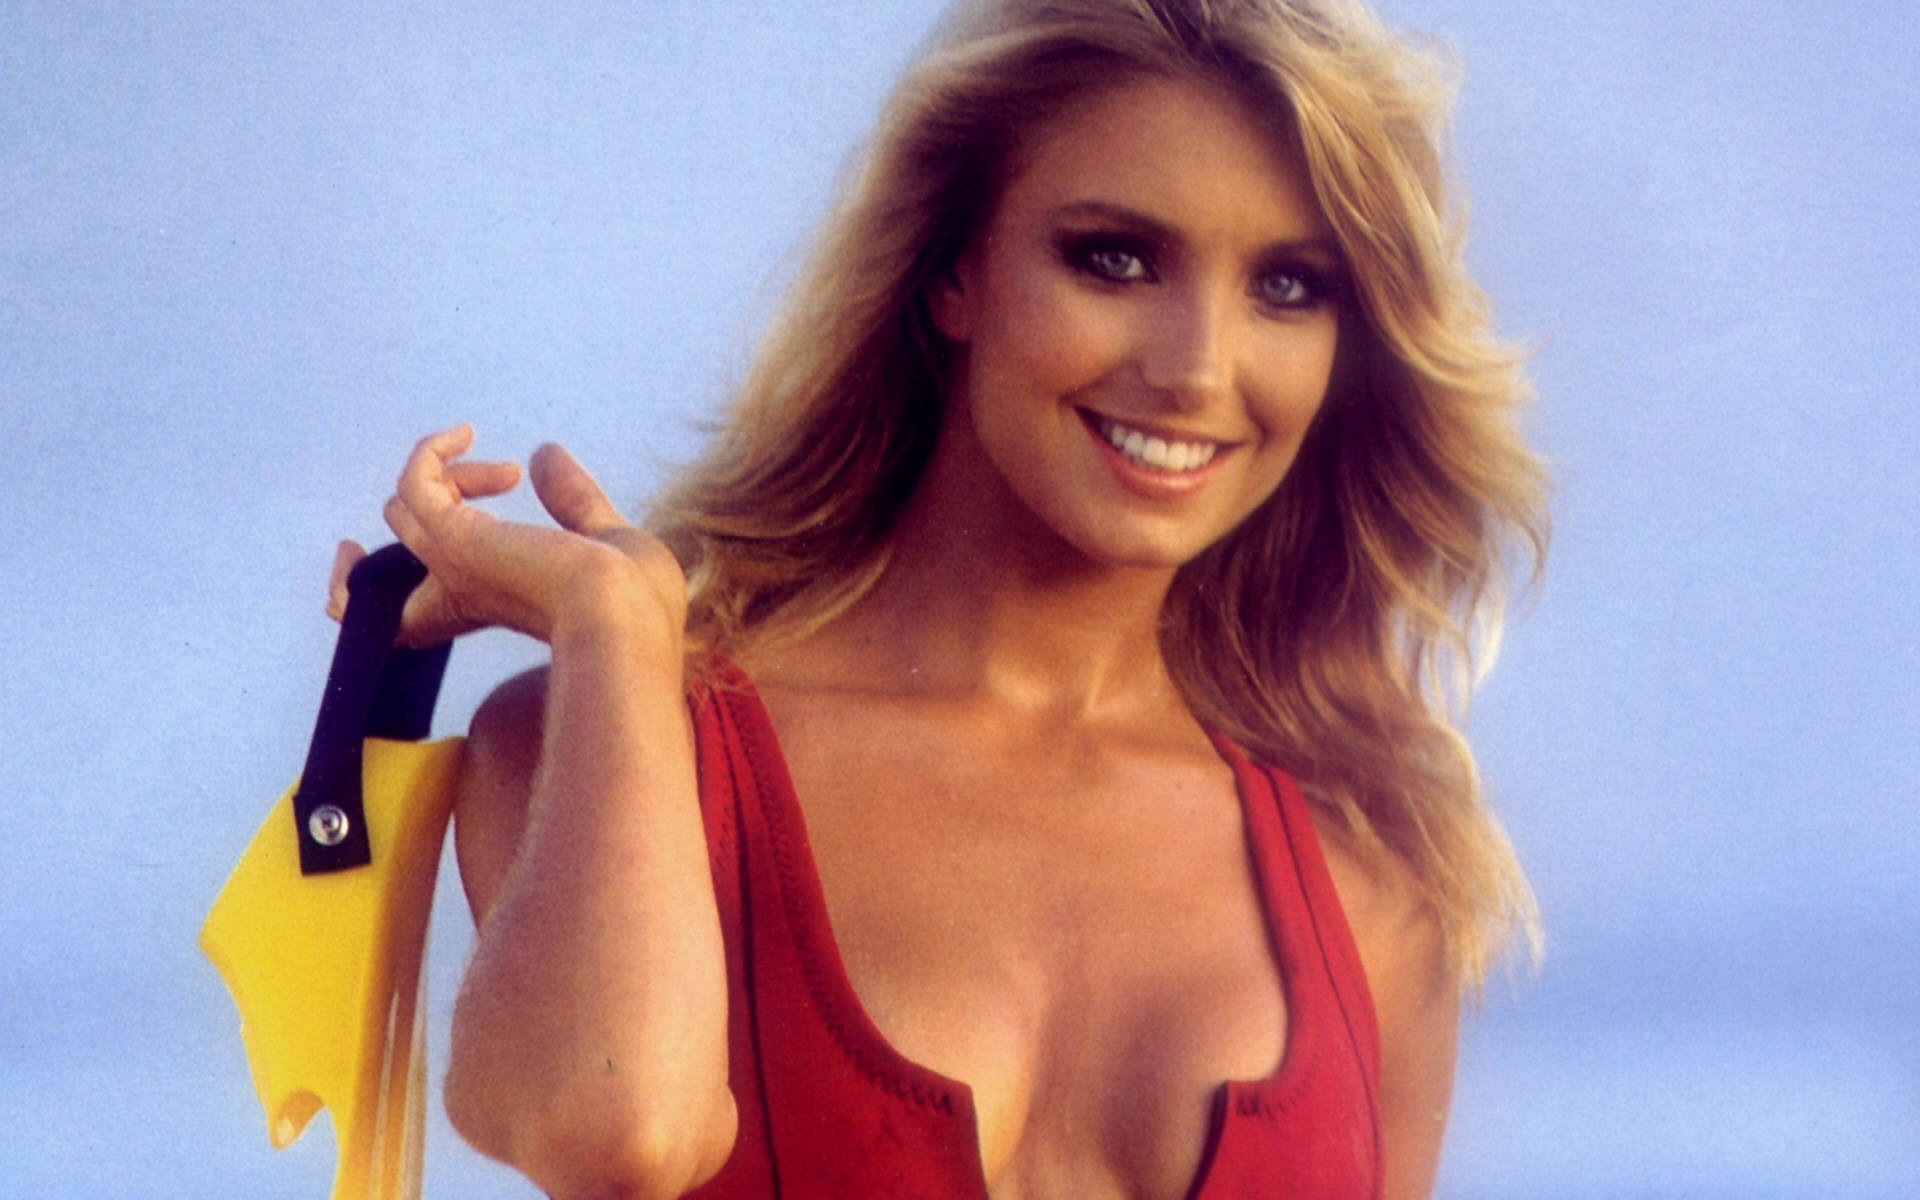 Christian Fall Iphone Wallpaper Poze Heather Thomas Actor Poza 8 Din 81 Cinemagia Ro